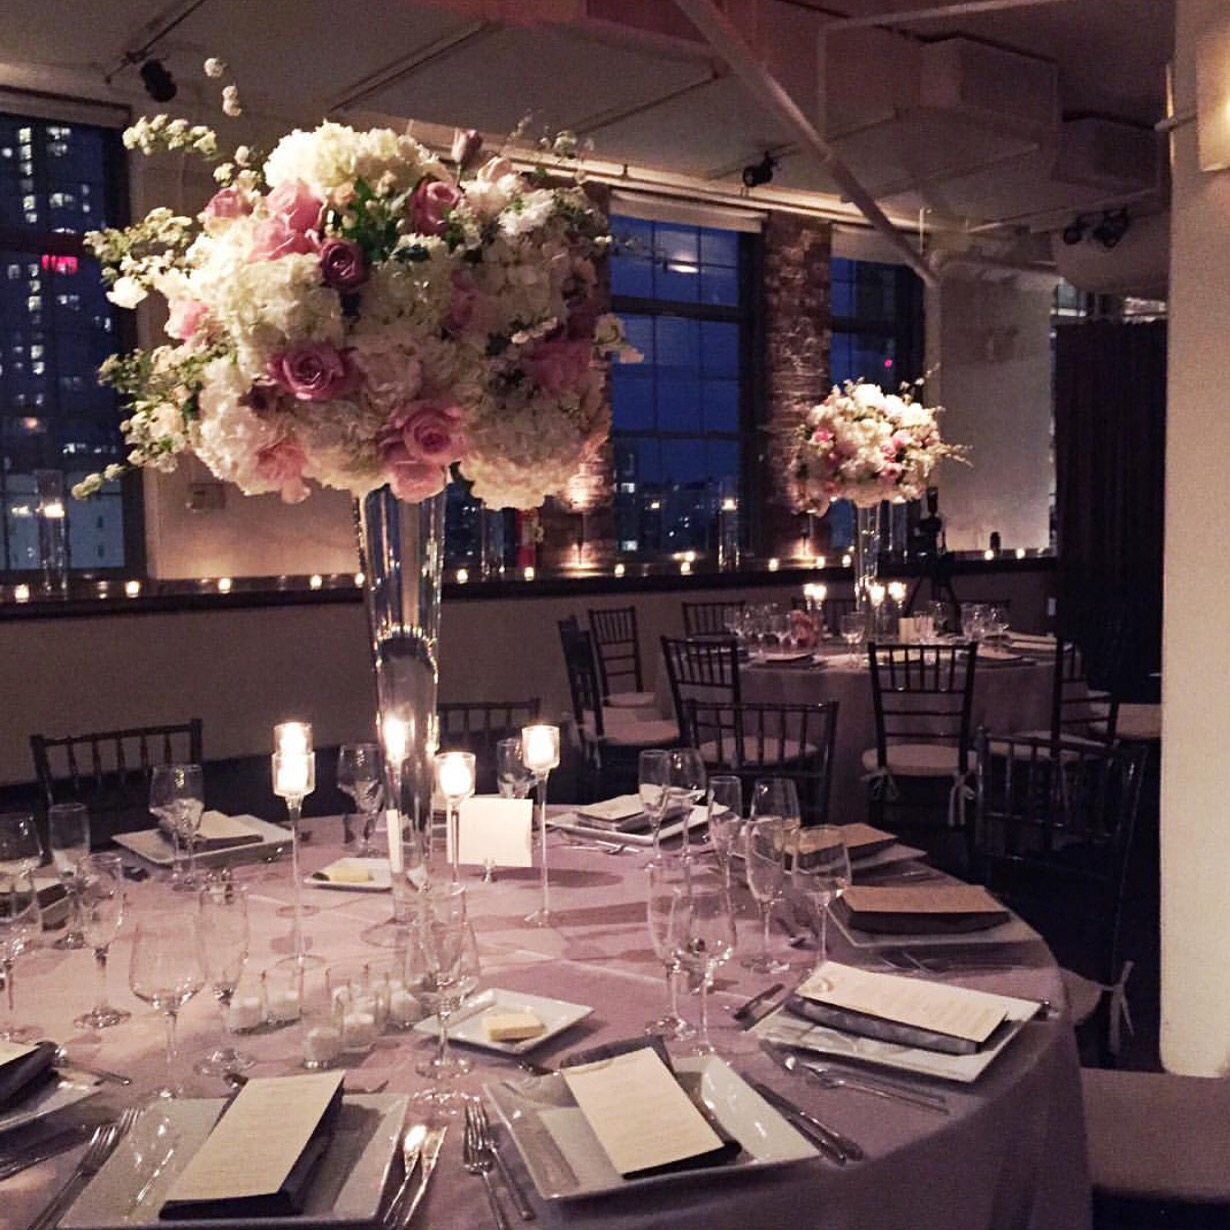 Summer wedding at Tribeca rooftop